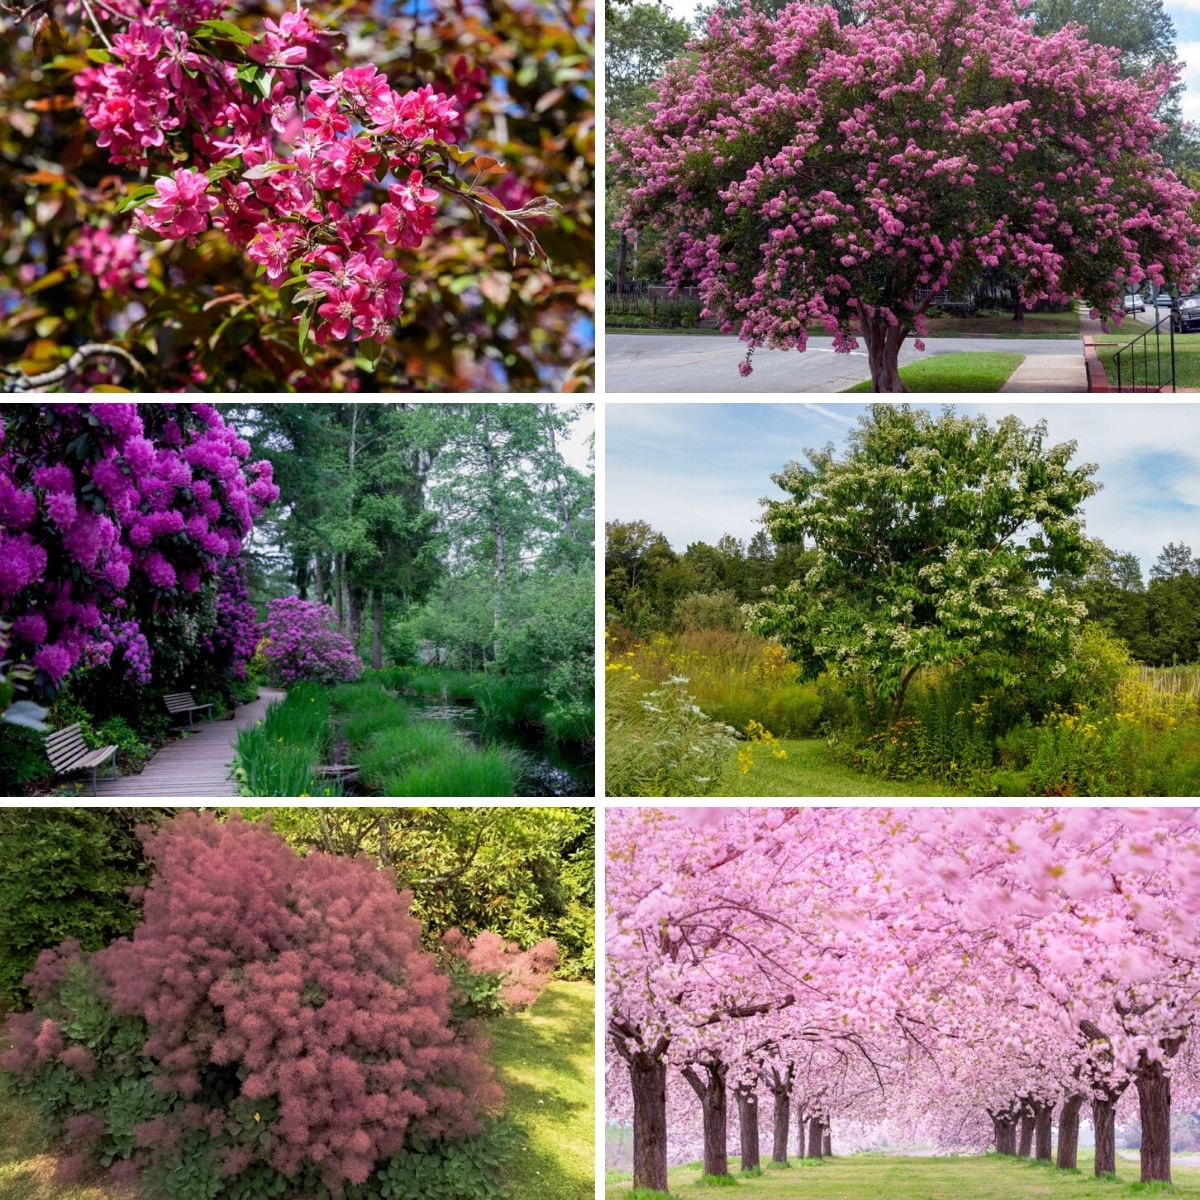 Collage photo featuring flowering trees and shrubs.